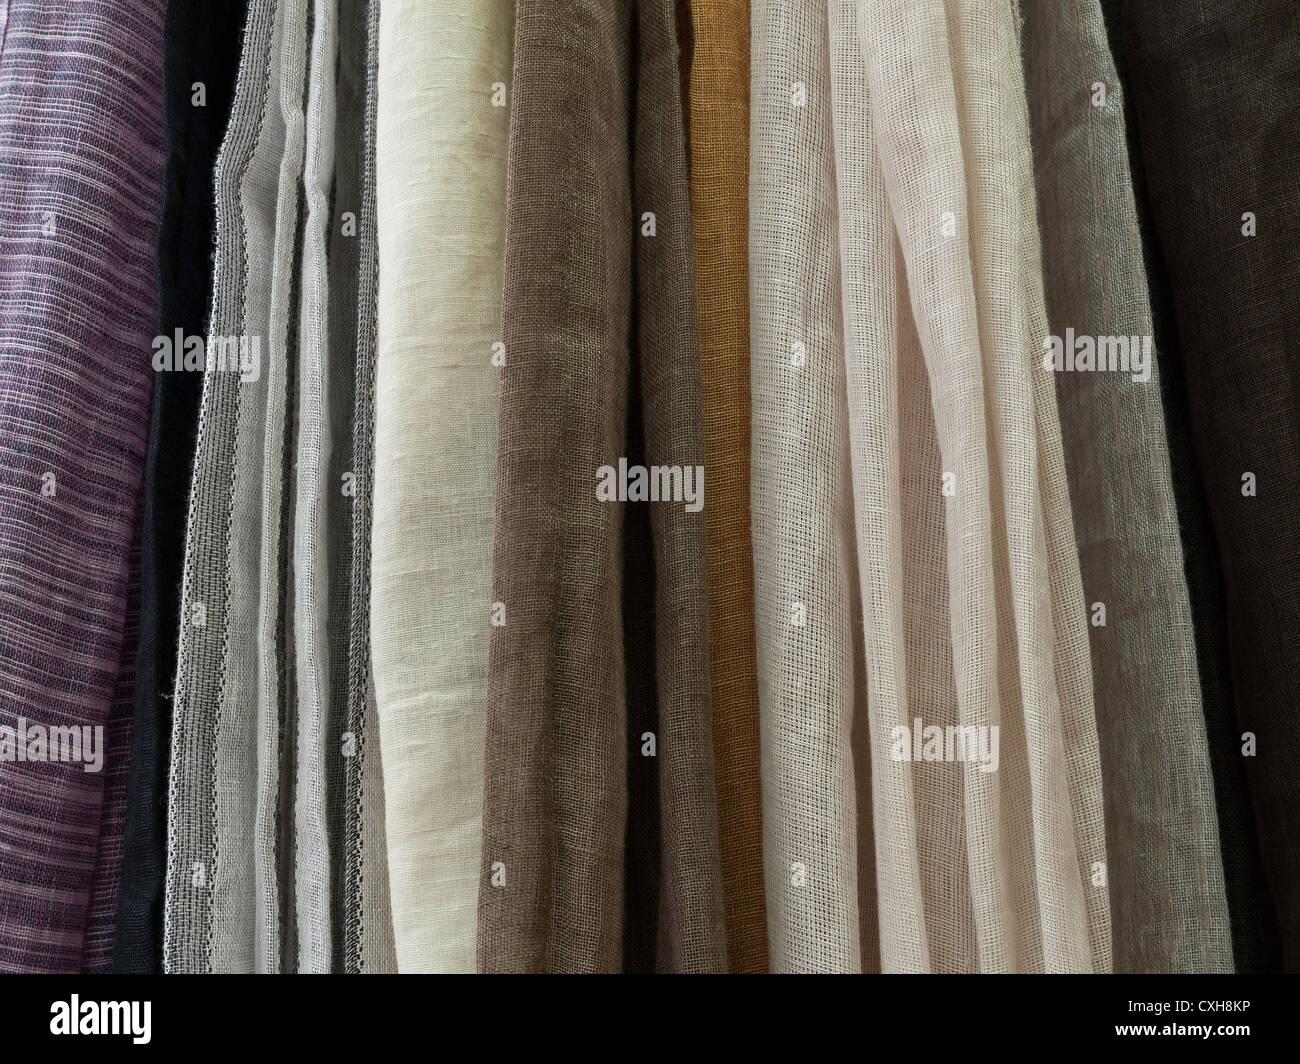 Selection of curtains - Stock Image